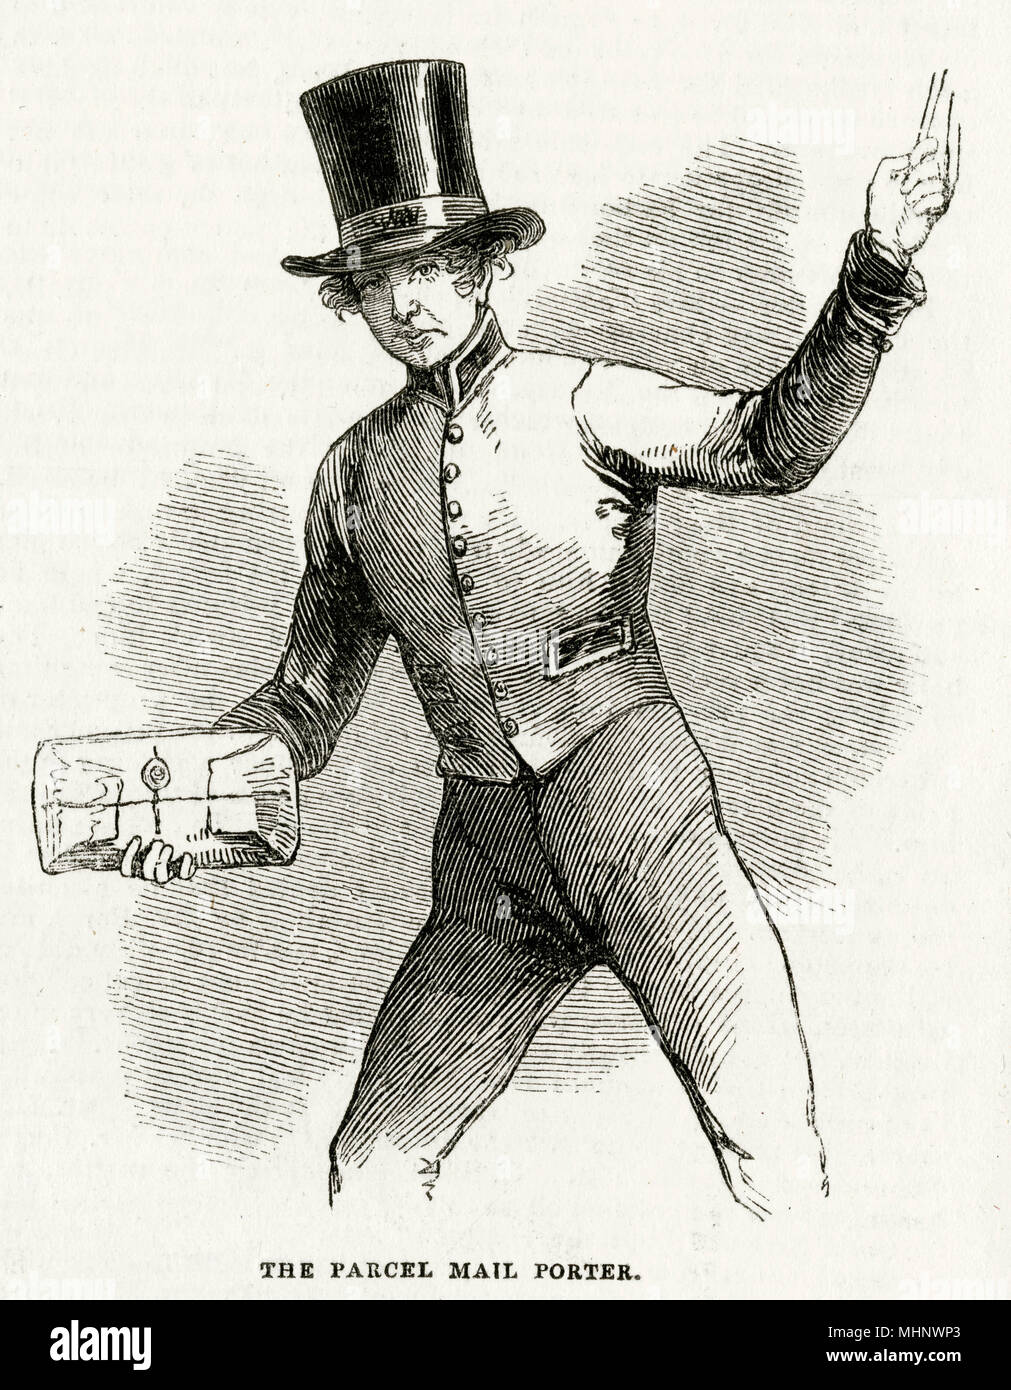 Parcel mail porter in London.     Date: 1846 - Stock Image